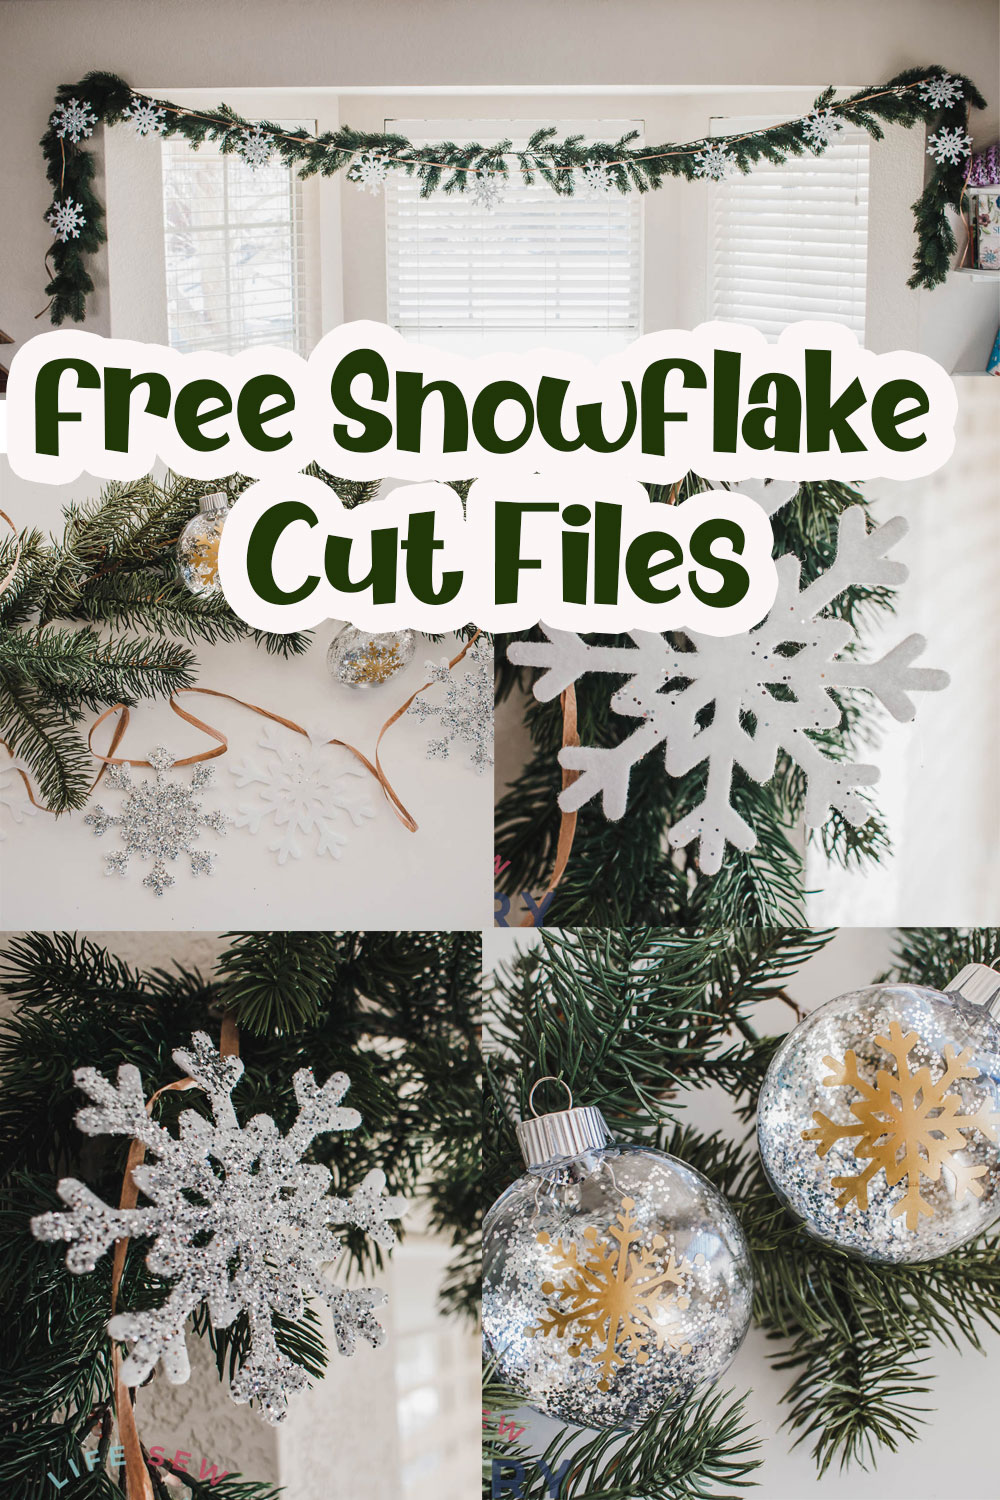 Make cute snowflake crafts with free svg files. Create wintry crafts with this huge list of free snowflake svg files. This post has a garland and ornament tutorial using snowflakes.